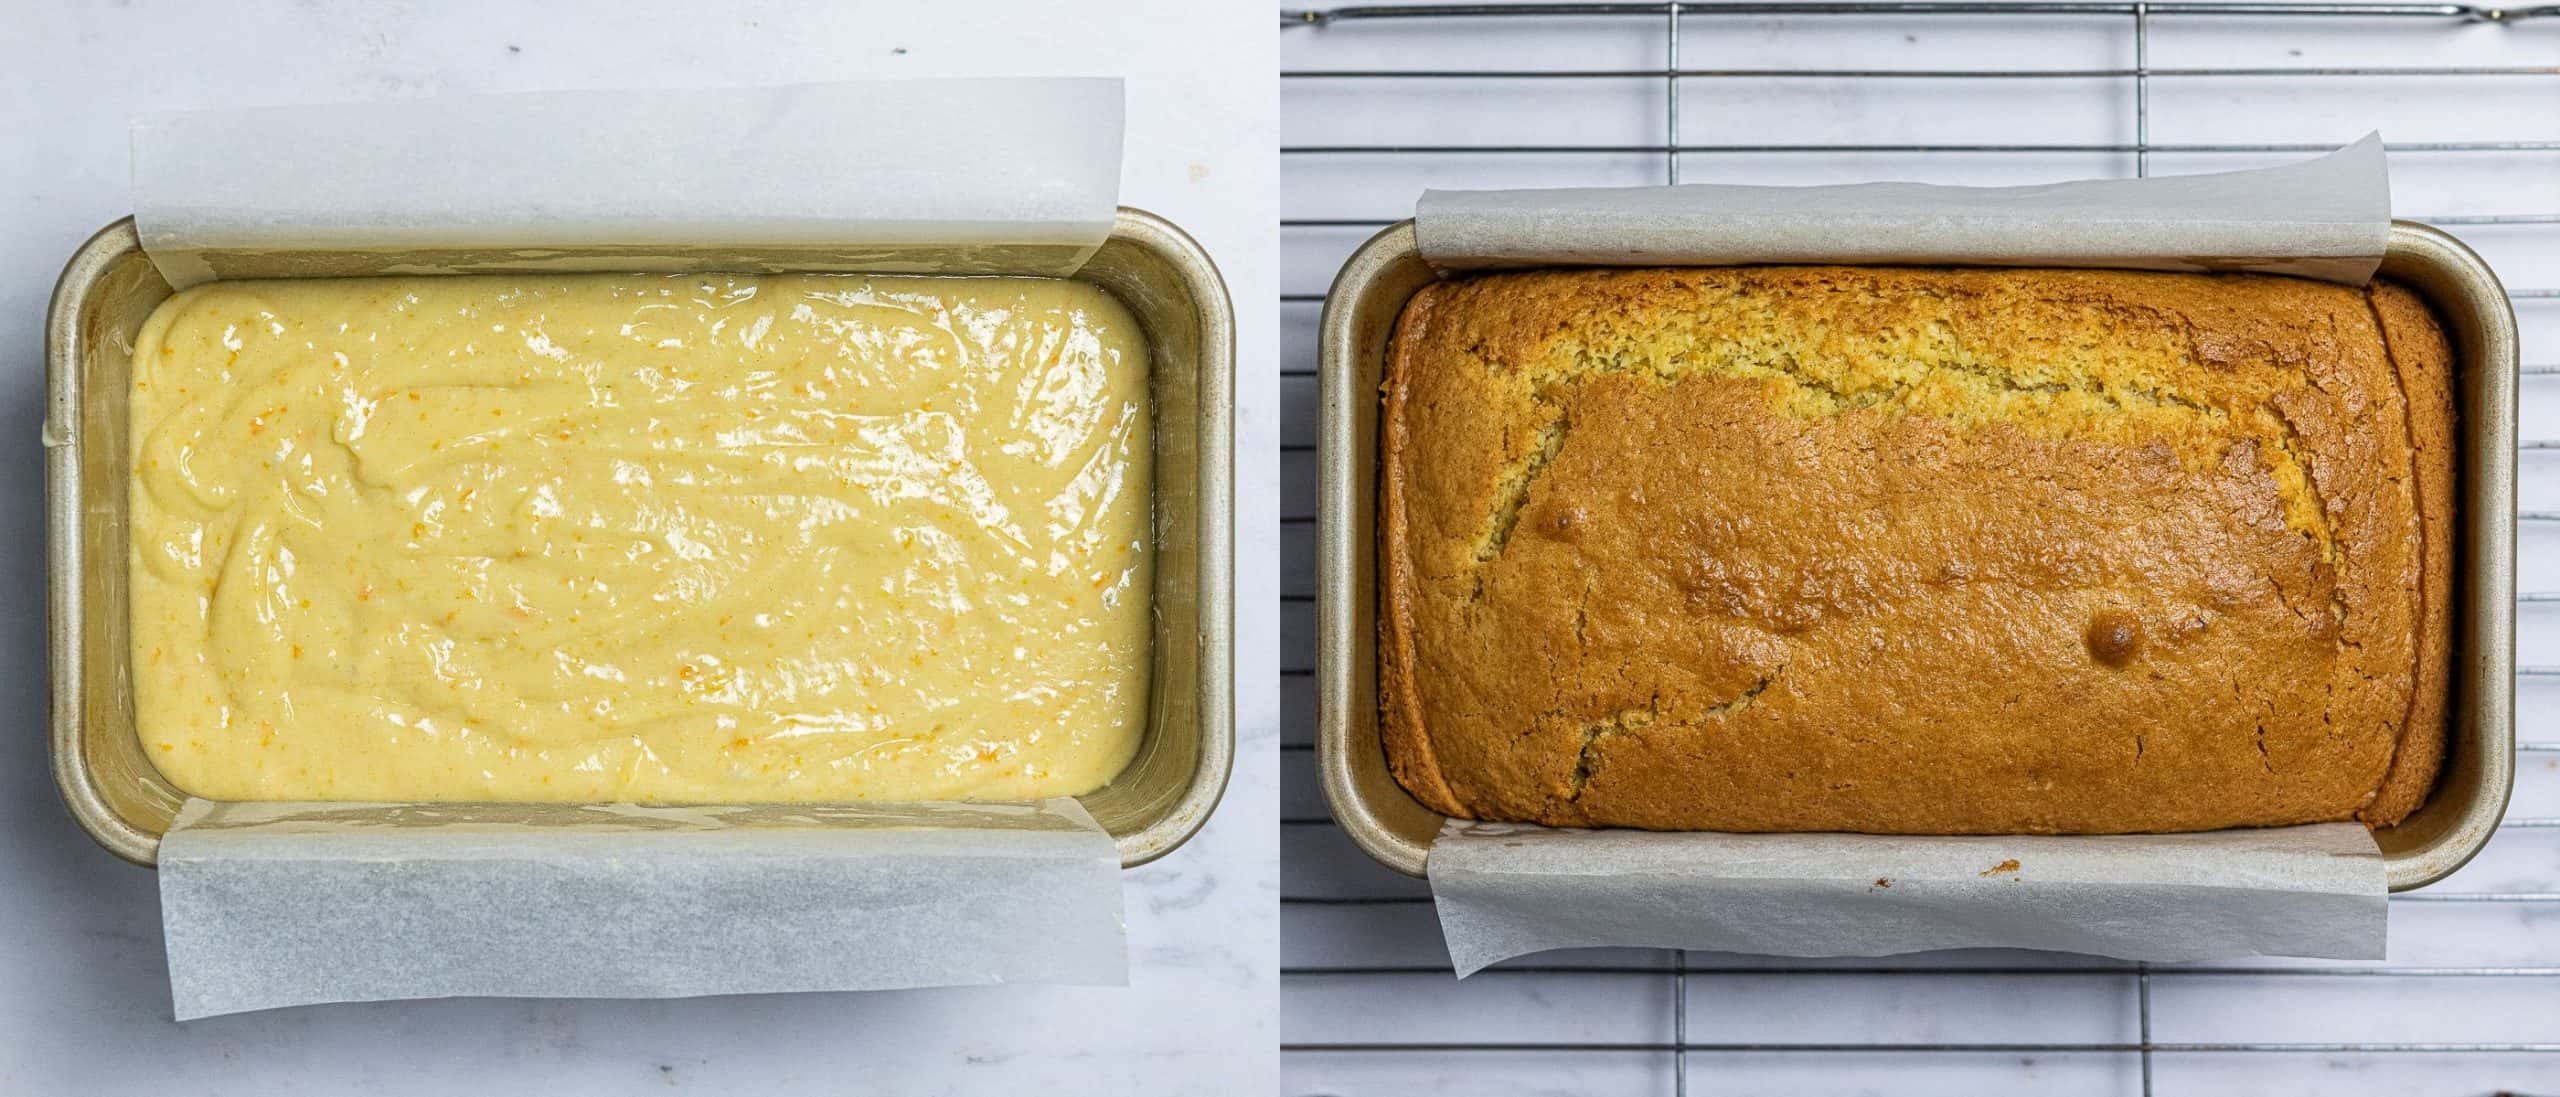 Step 3 - a two image collage of the batter in the cake tin and the baked cake.